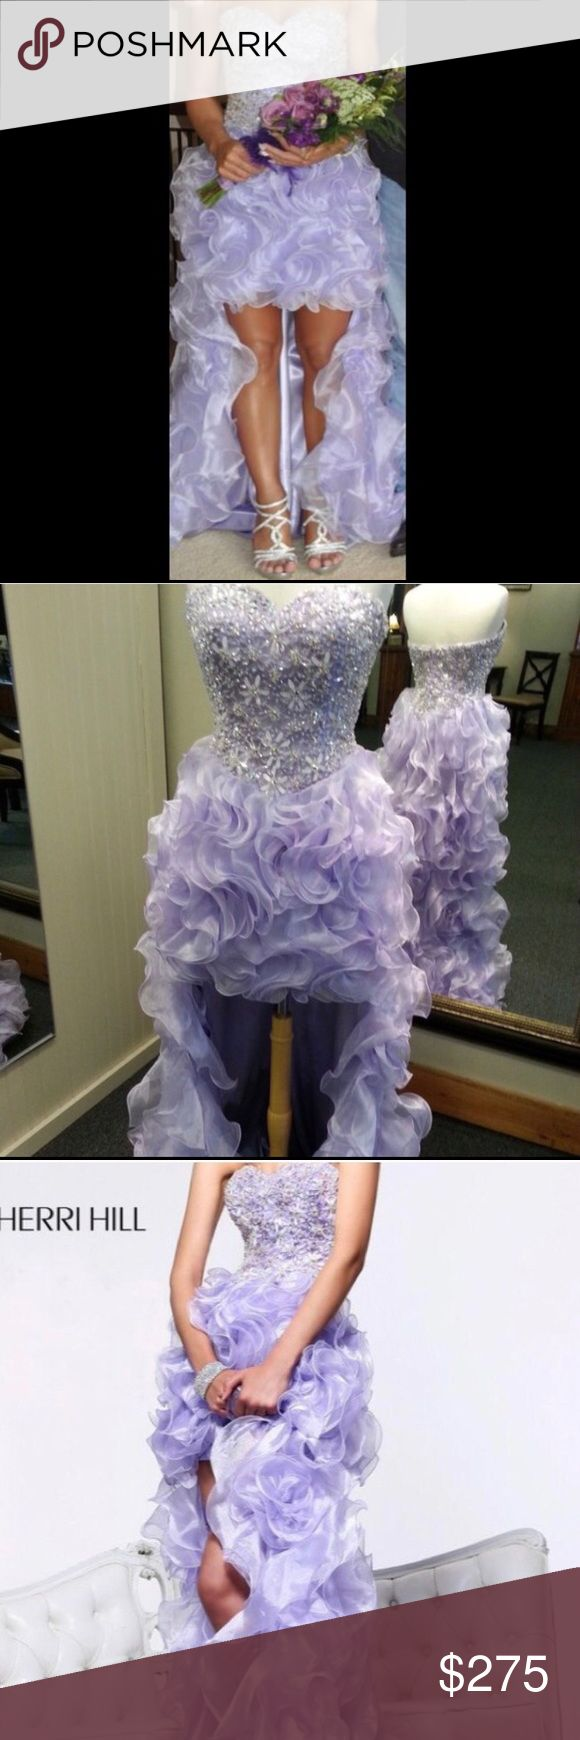 Sherri Hill 3871 Prom Gown Sherri Hill 3871 light purple. Originally priced at $550. This is a pre-owned dress only worn once. This is a beautiful dress! 💜💜 Model is 5'2. Sherri Hill Dresses Prom